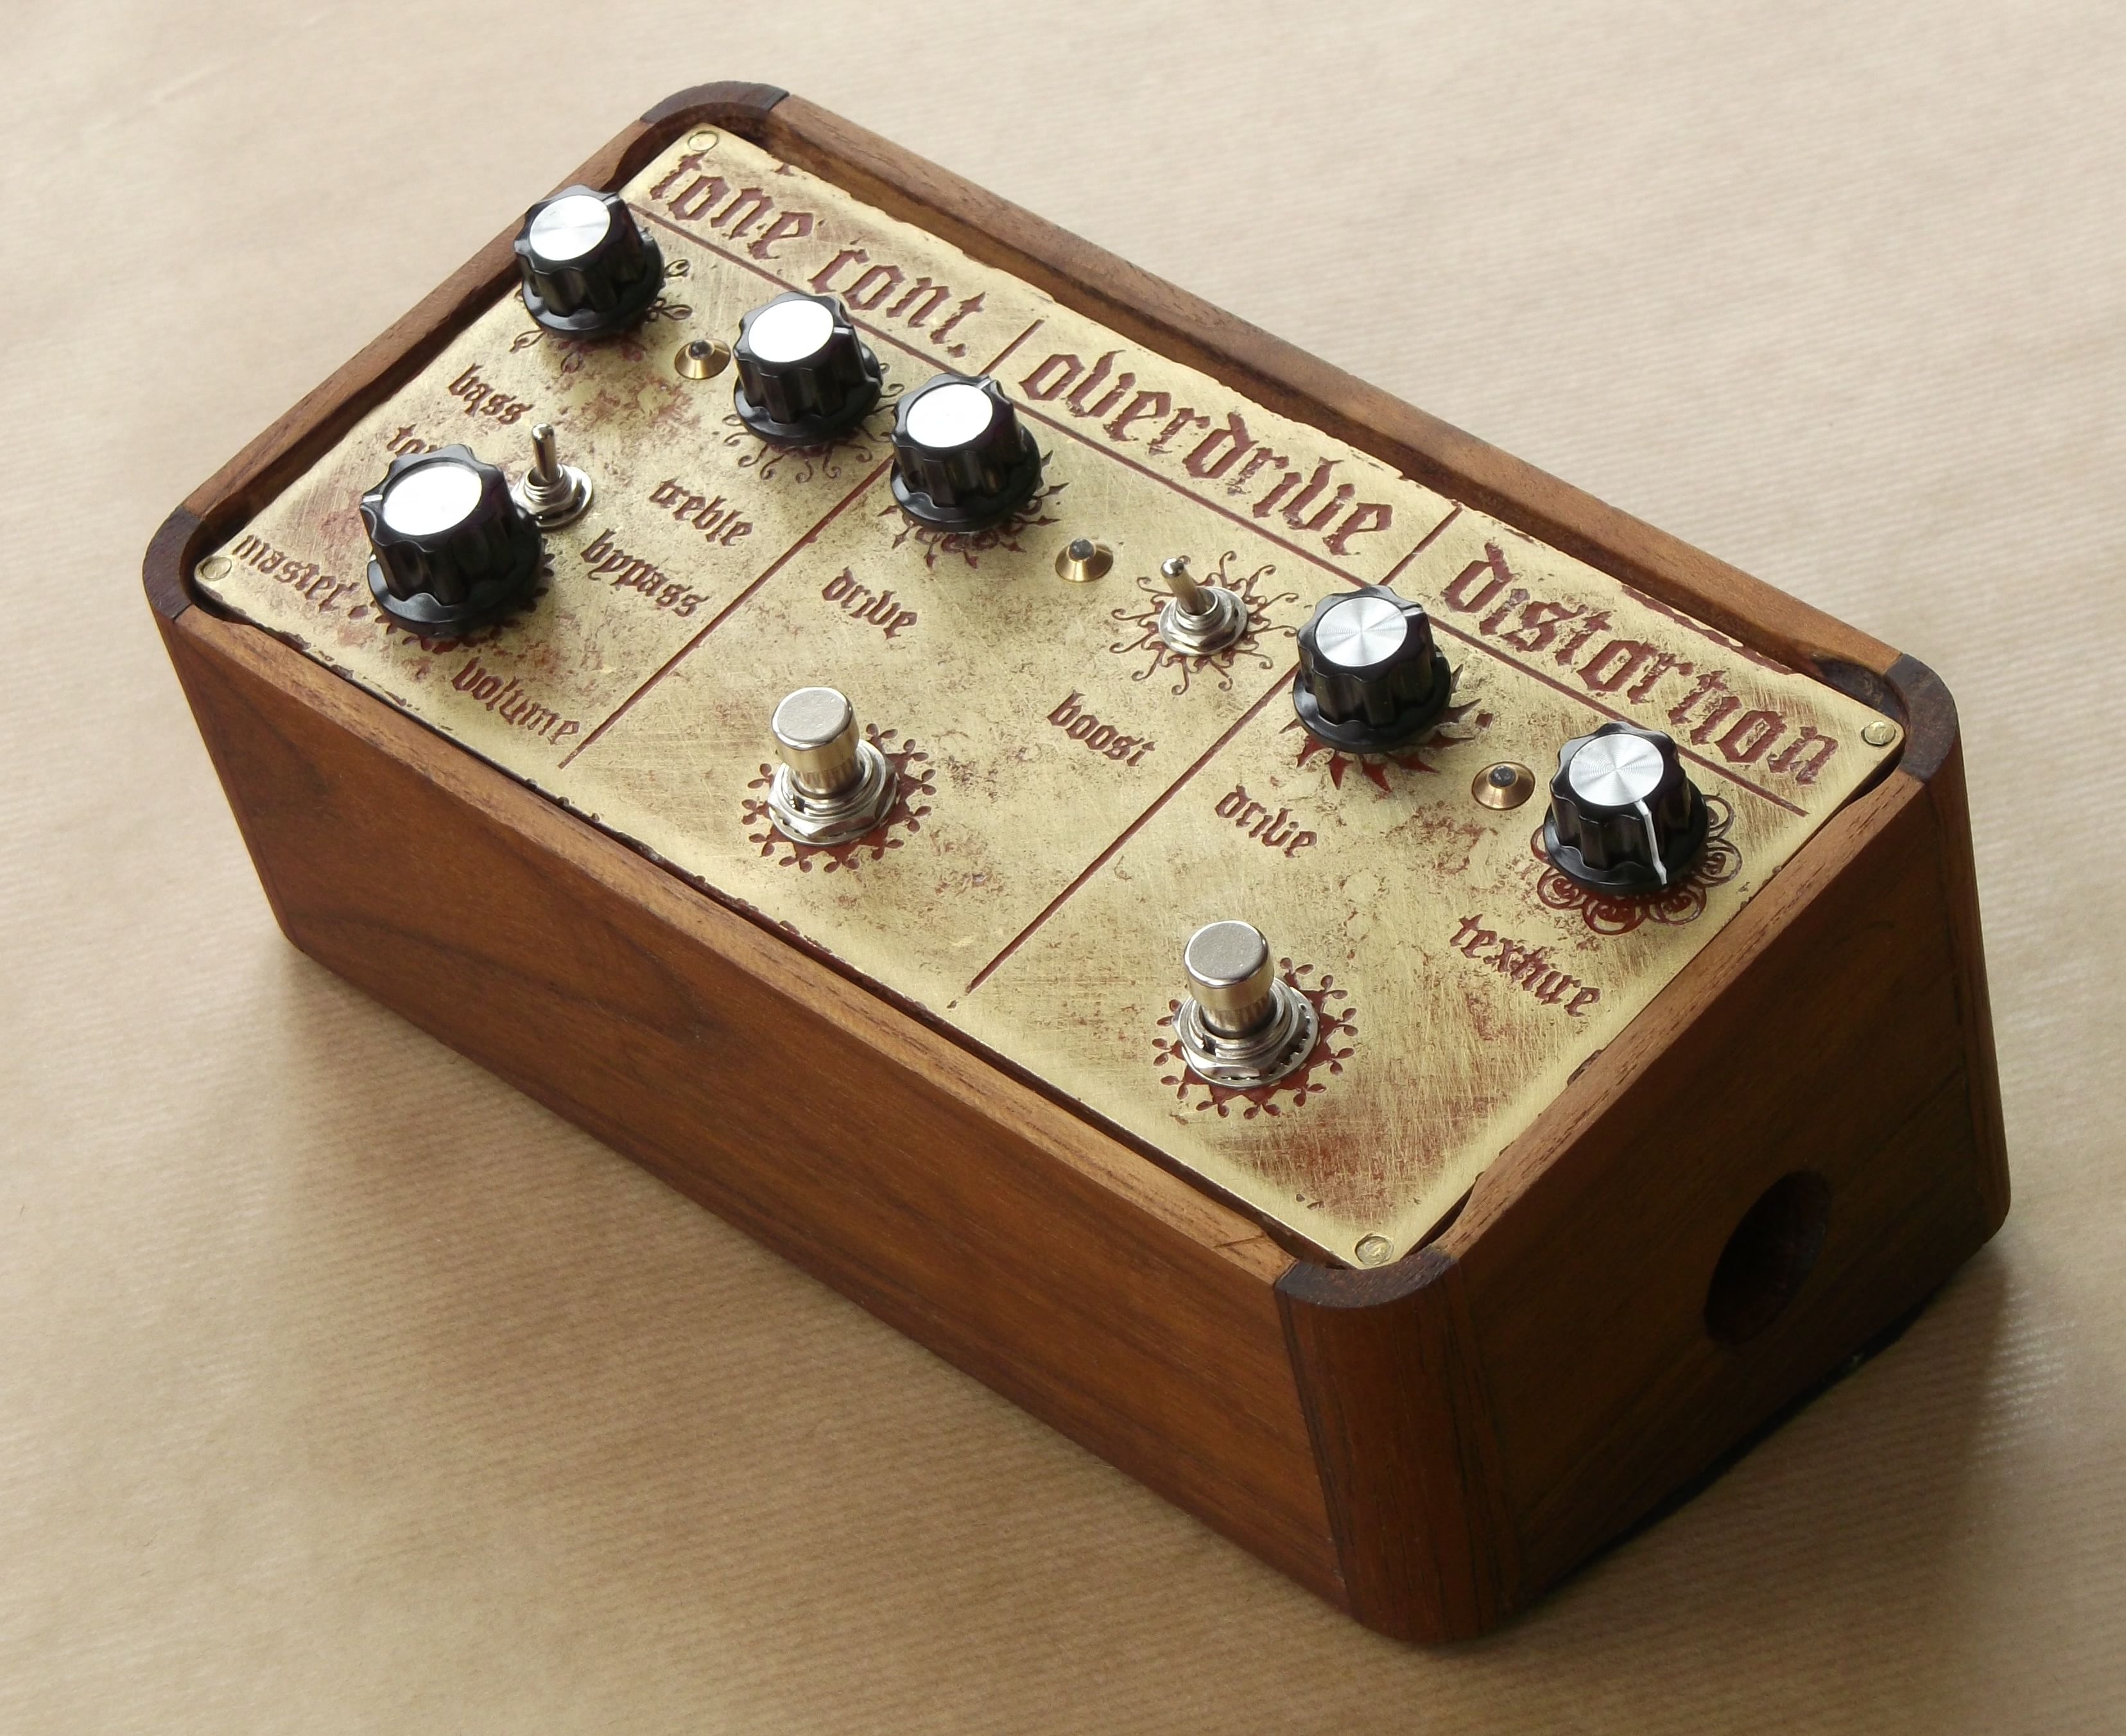 Feeling steampunk-y? Put that DIY boutique guitar pedal in your